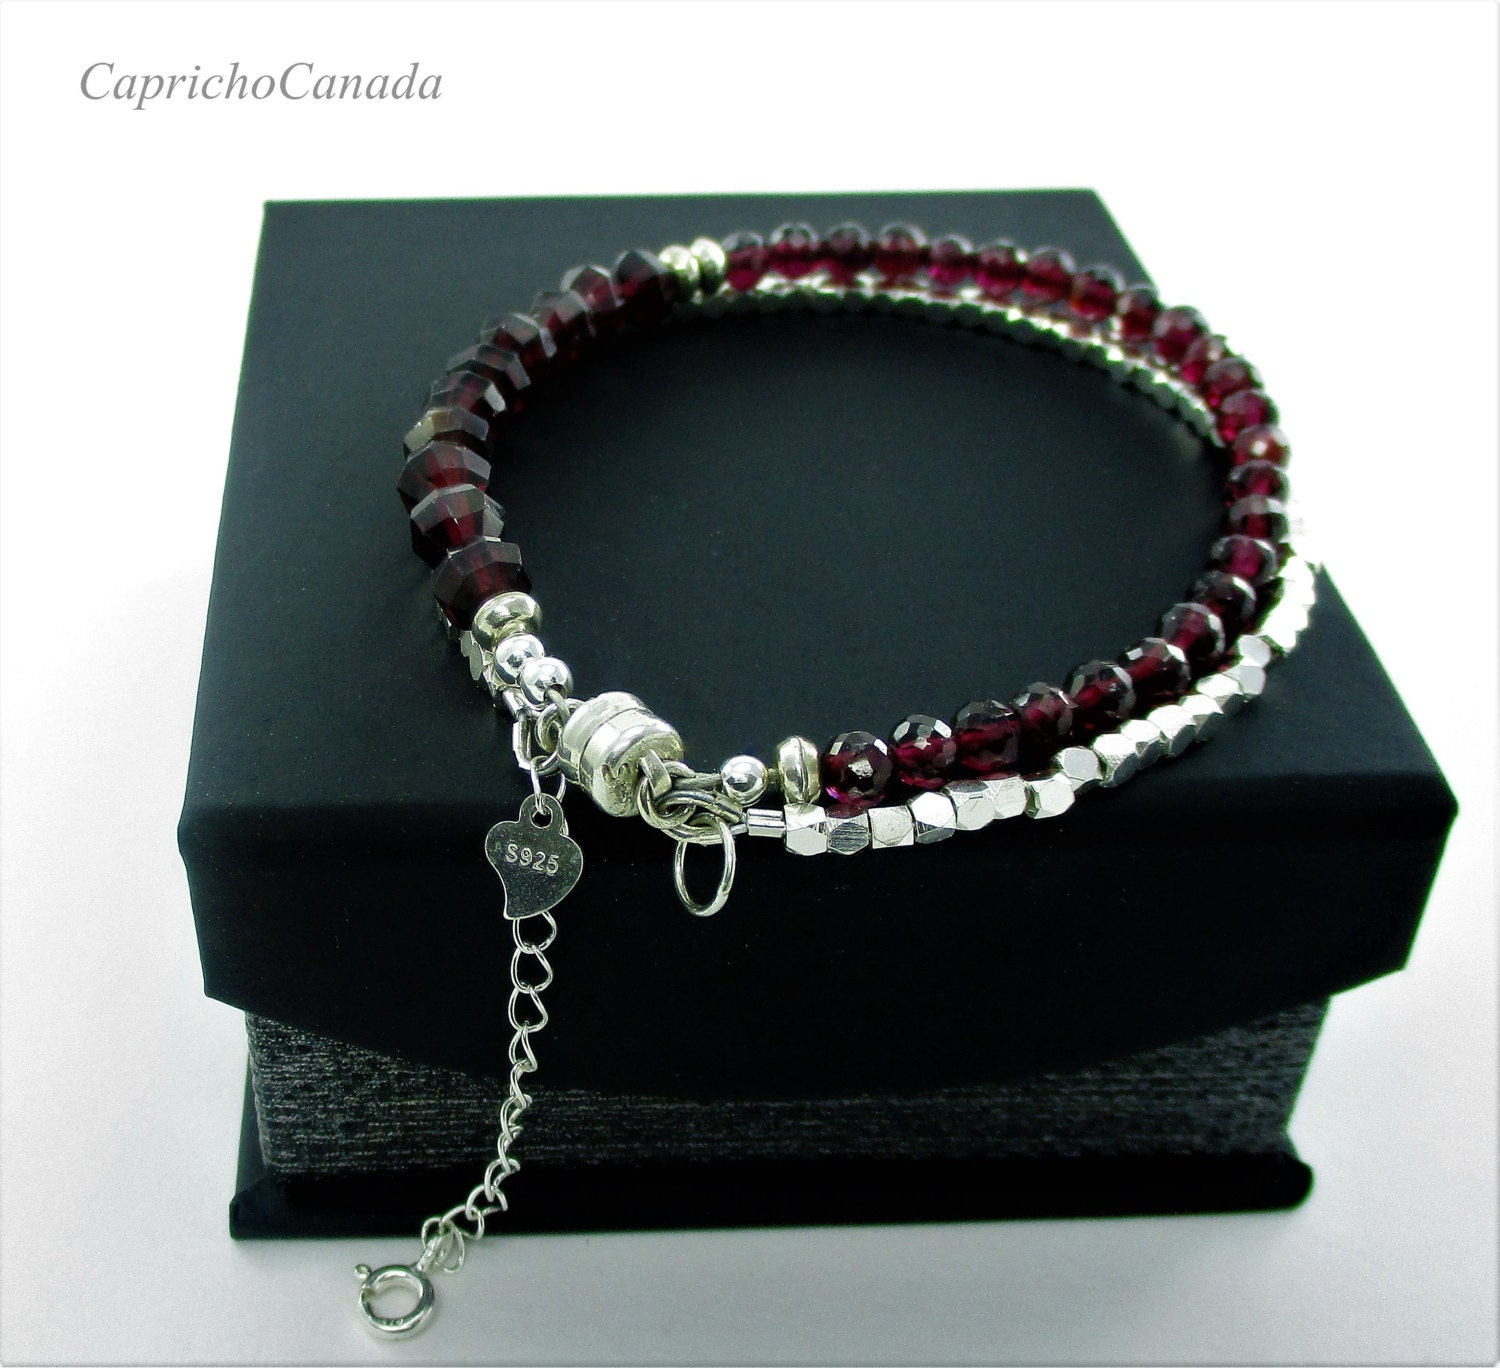 jewelryadjustable jewelry bracelet adjustable bracelethandmade il fullxfull braceletgold p garnet redstone fancy cherry jewelrybridesmaid jewelryred red braceletburgundycherryfancy burgundy